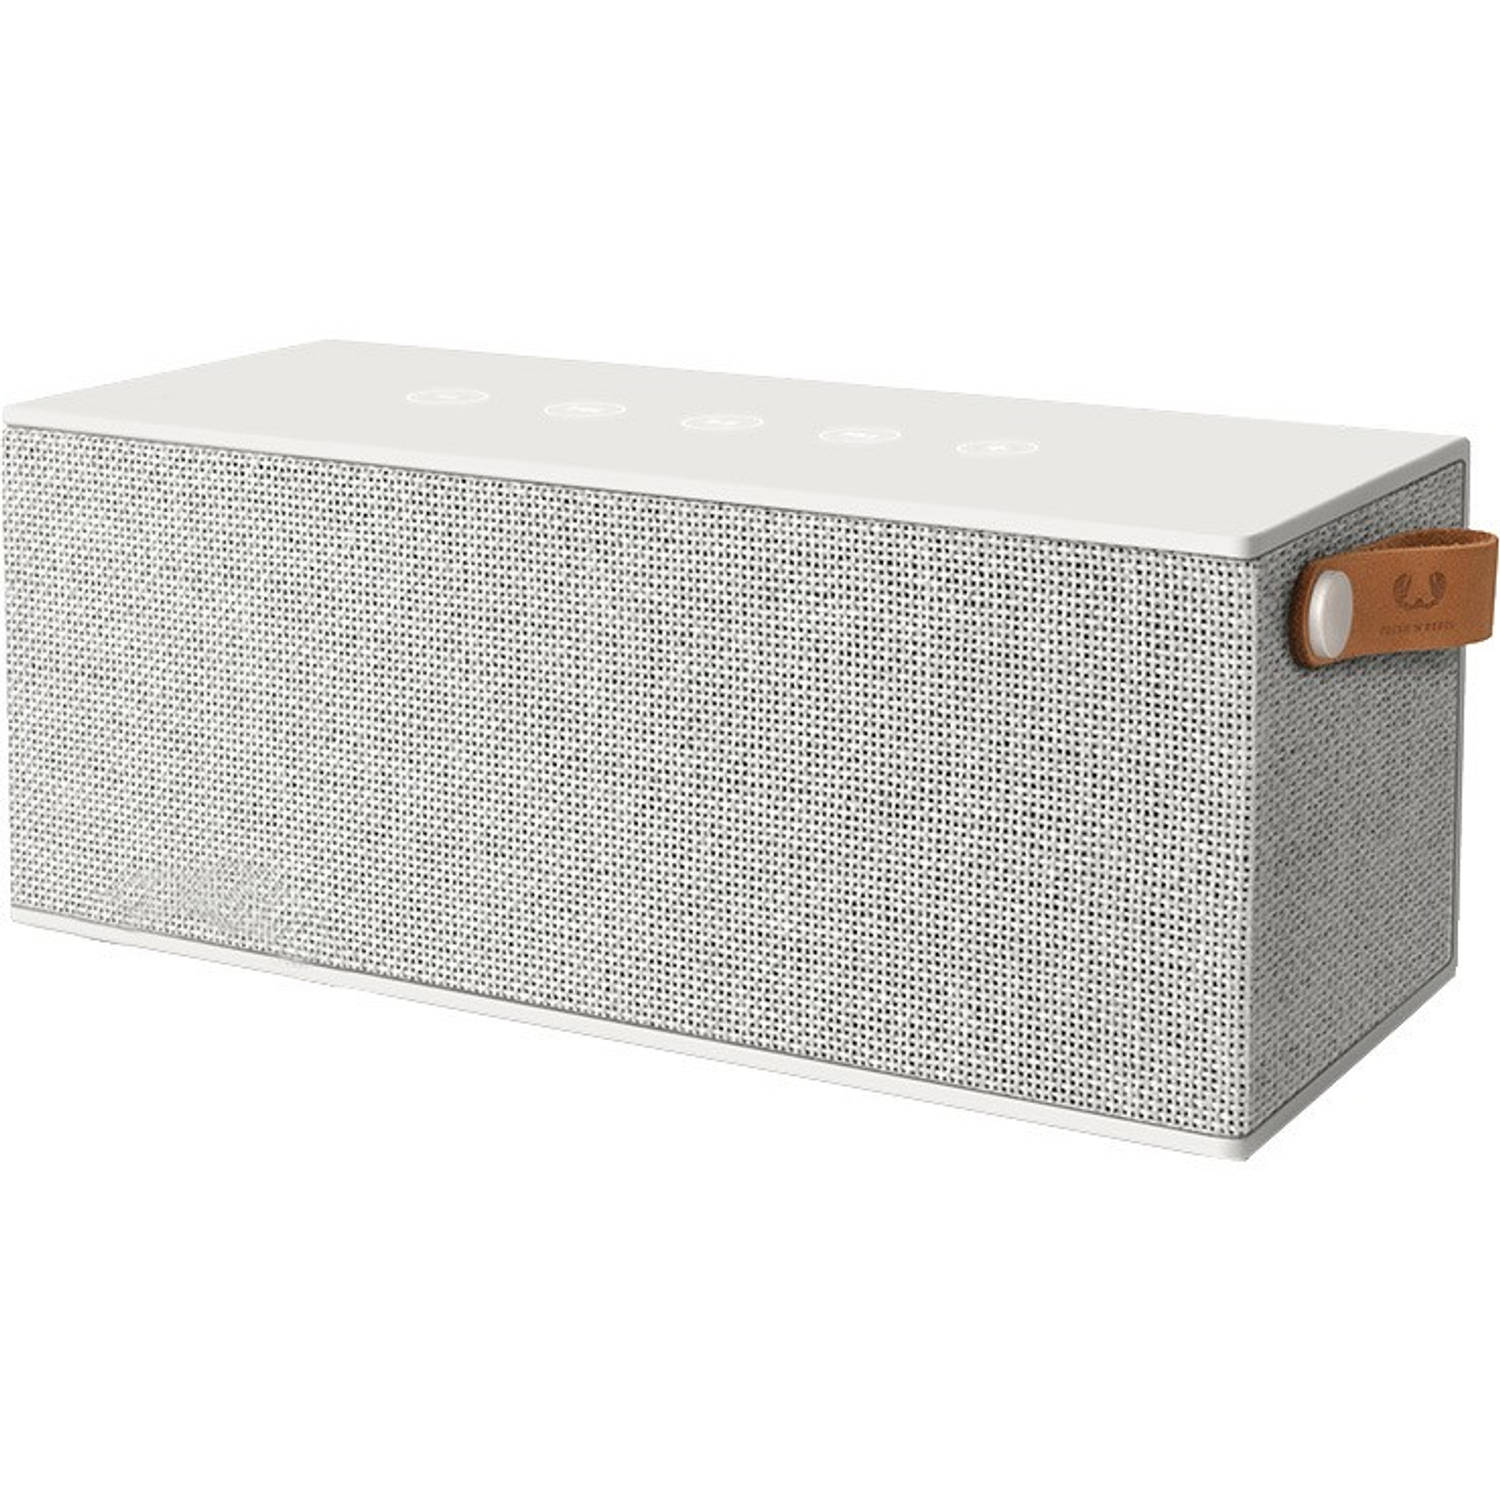 Rockbox Brick XL Fabriq Cloud